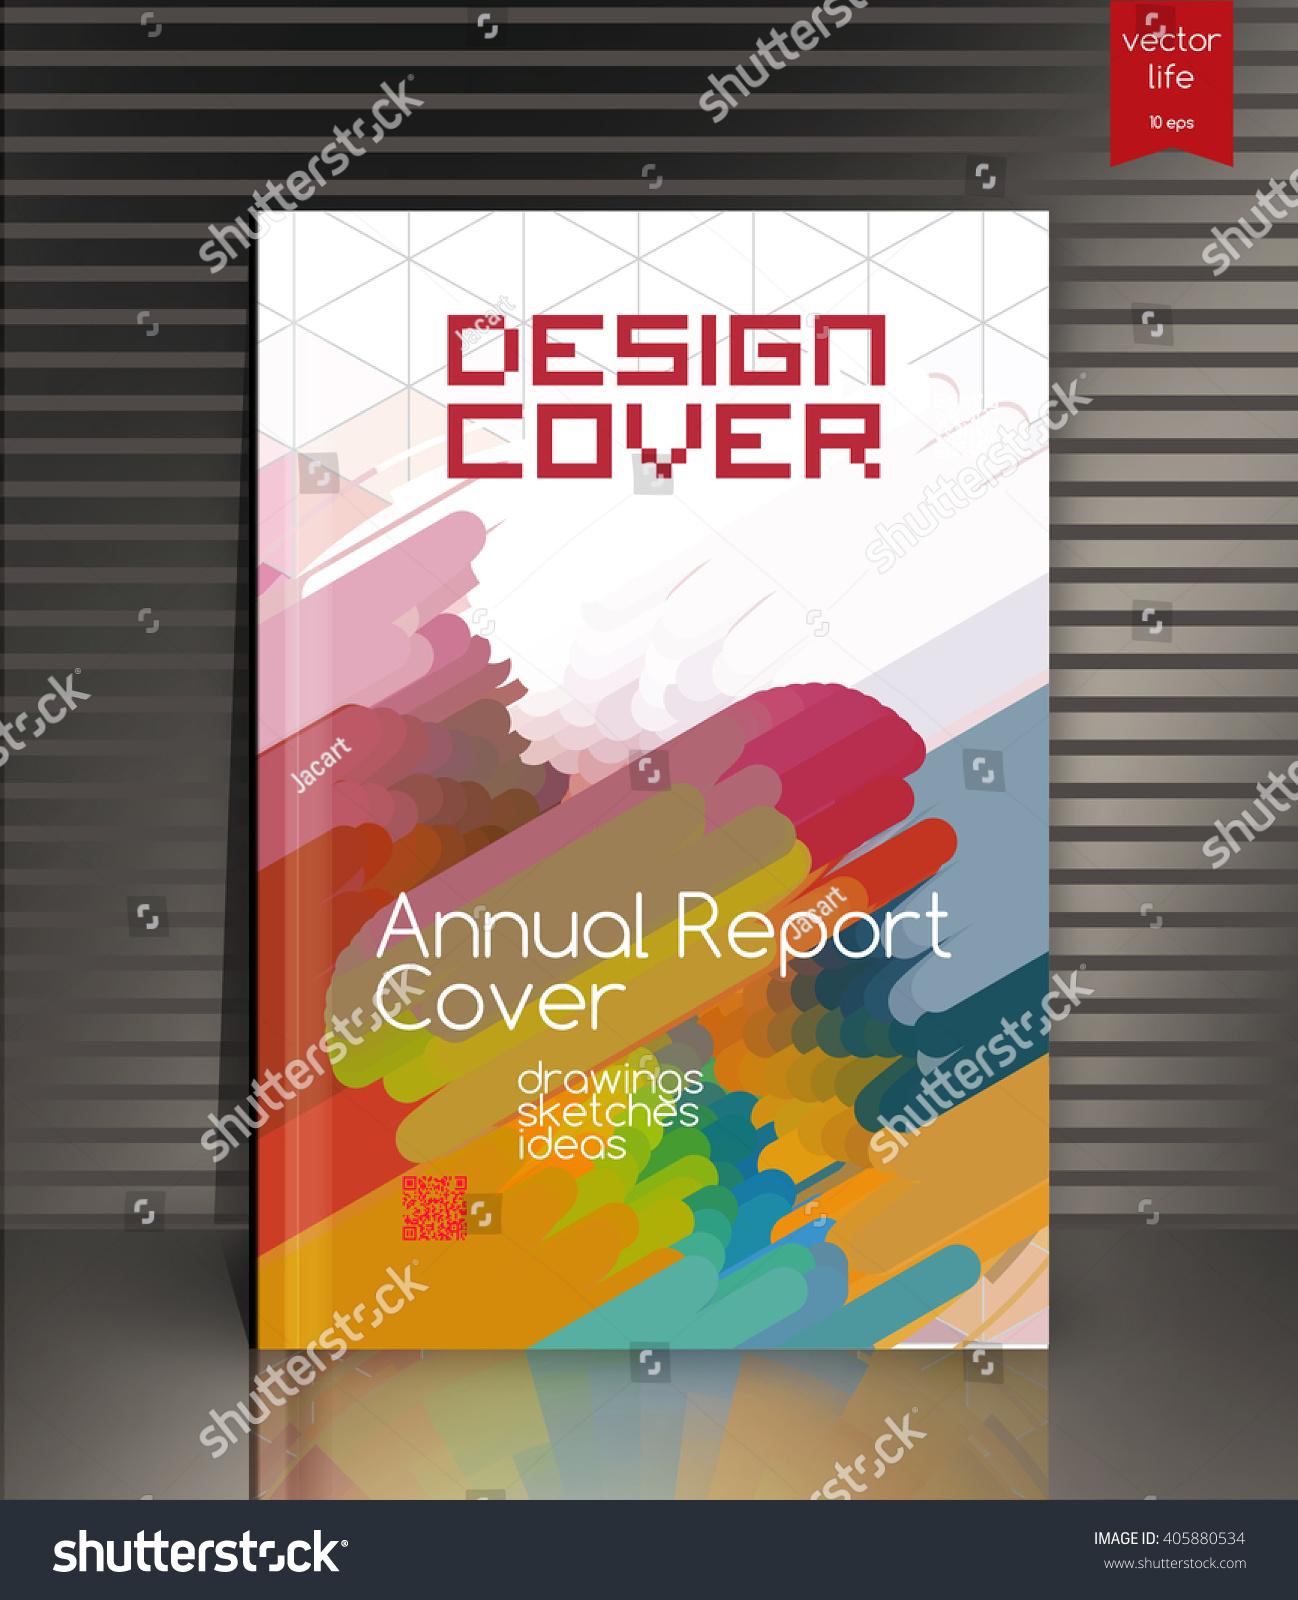 annual report cover cover design cover stock vector 405880534 annual report cover cover design cover for the company s environmental energy and